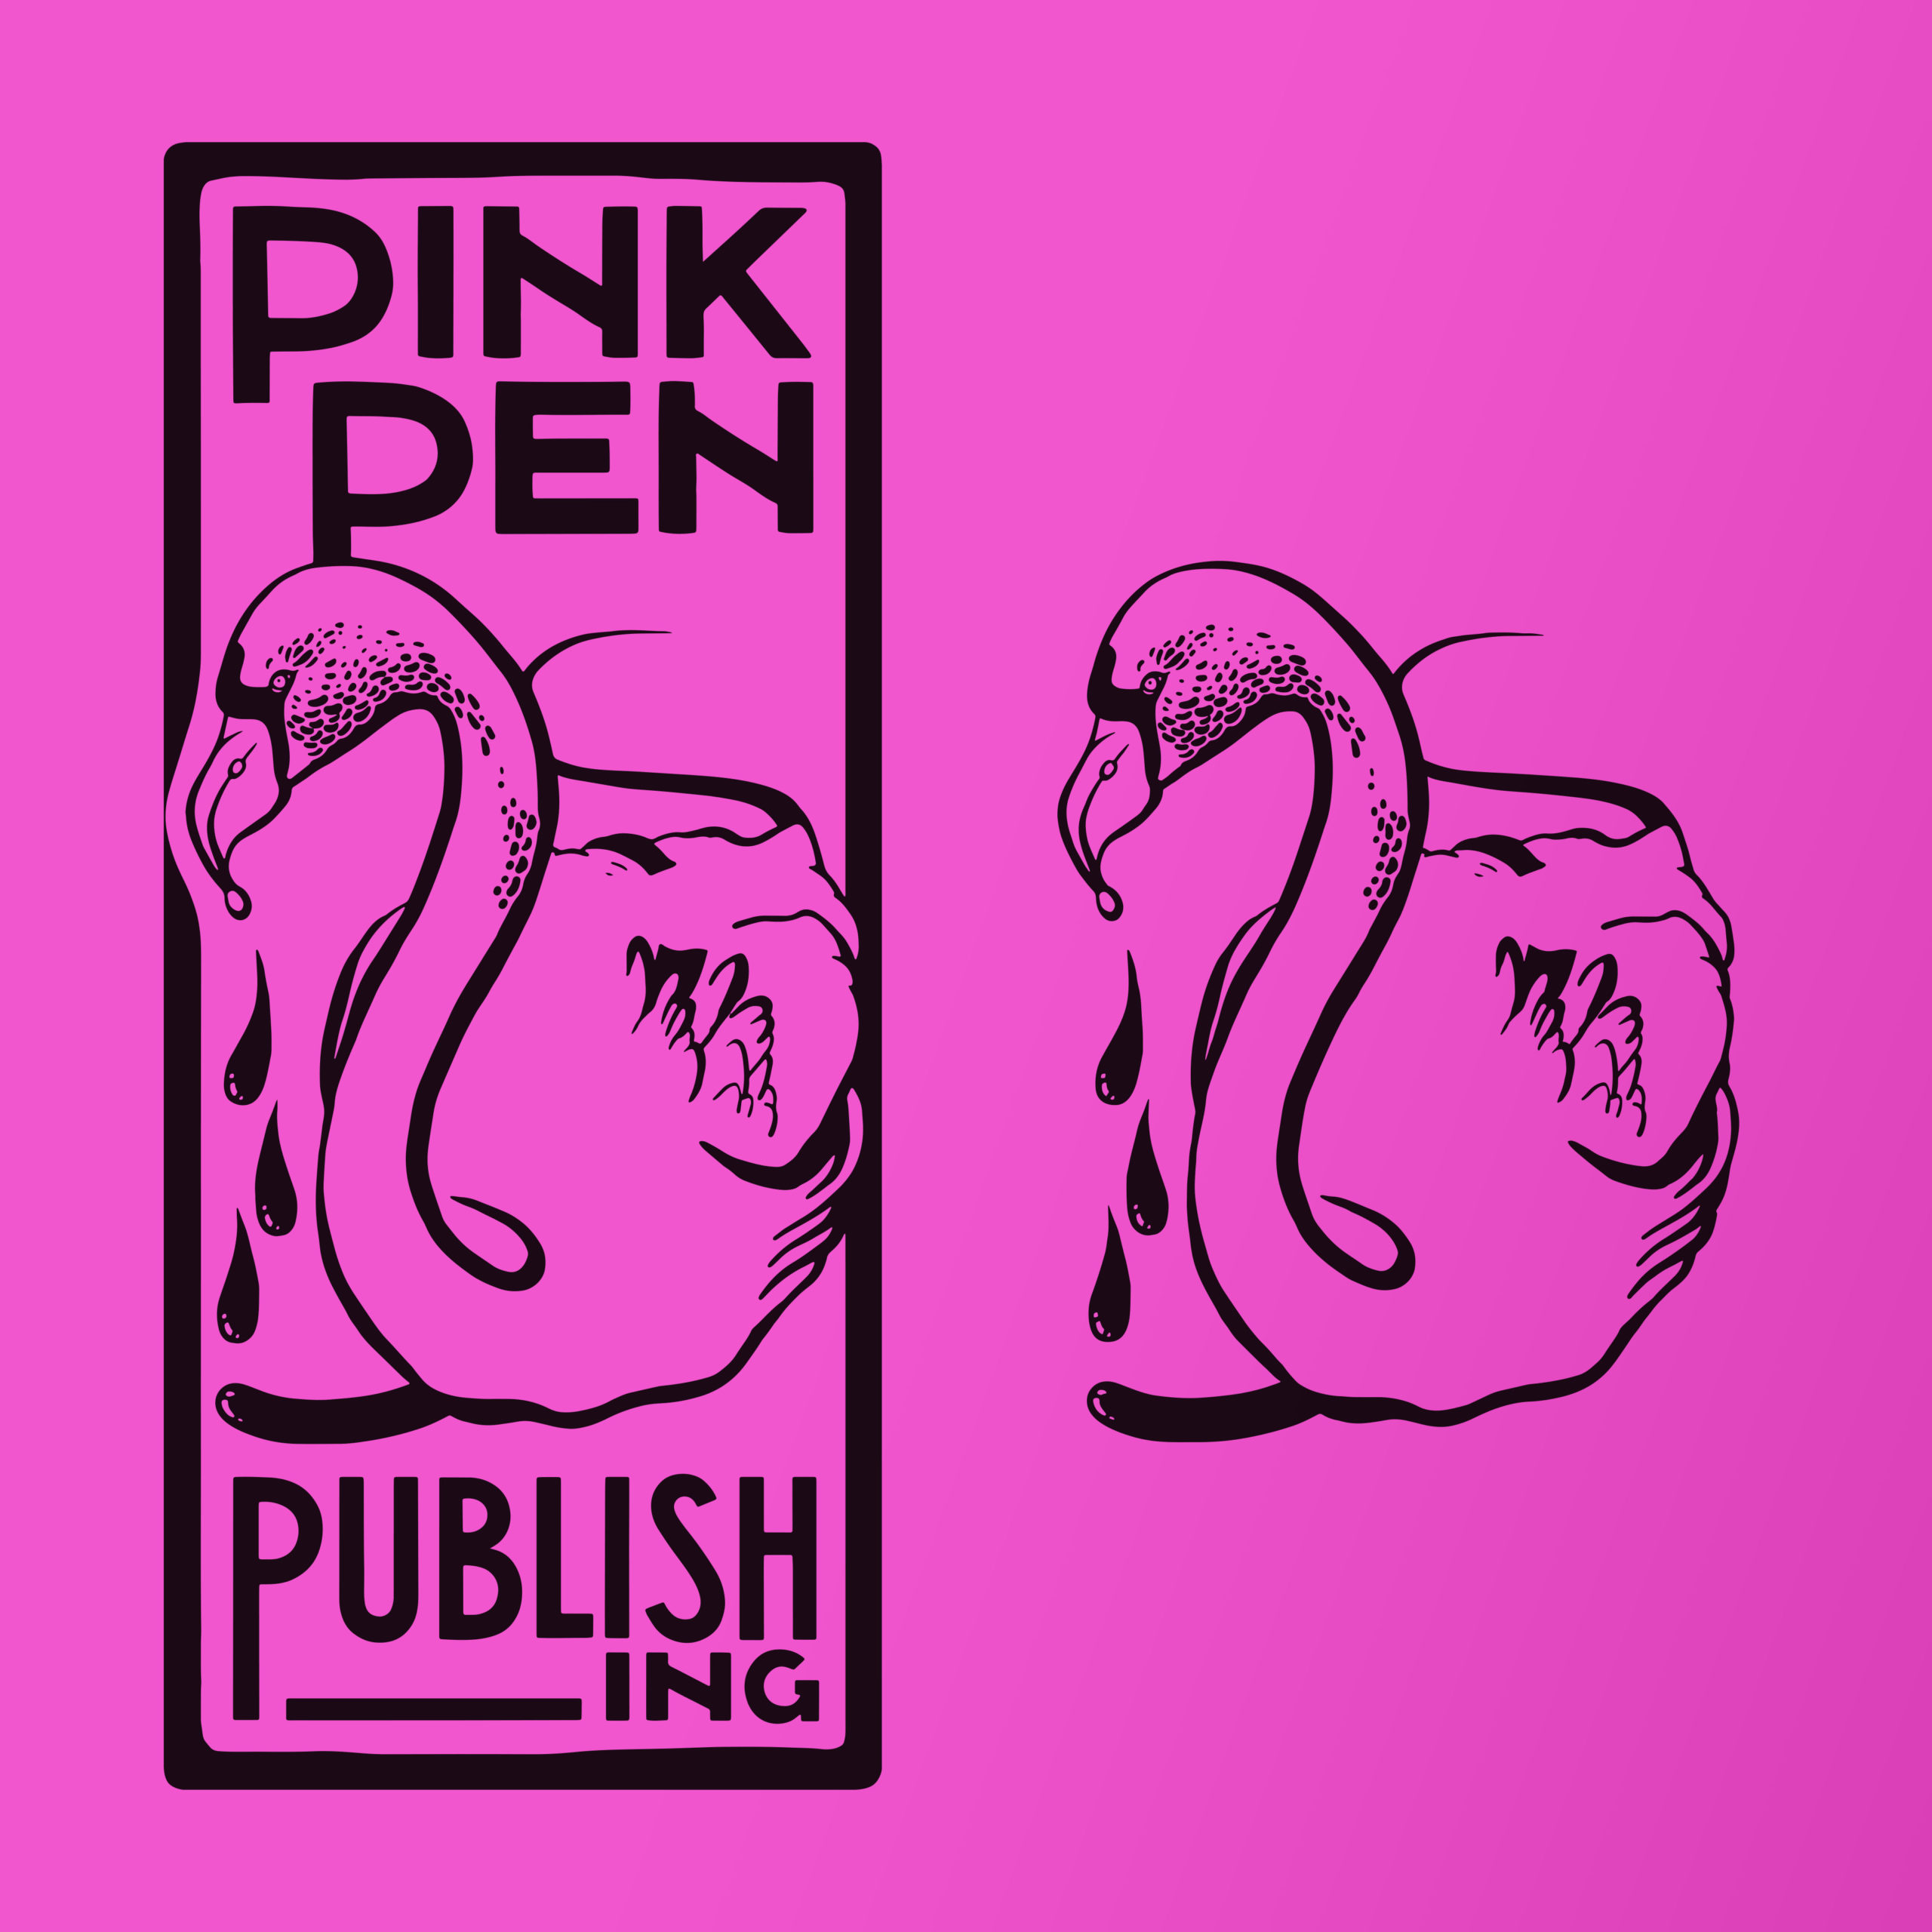 Logo Pink Pen Publishing